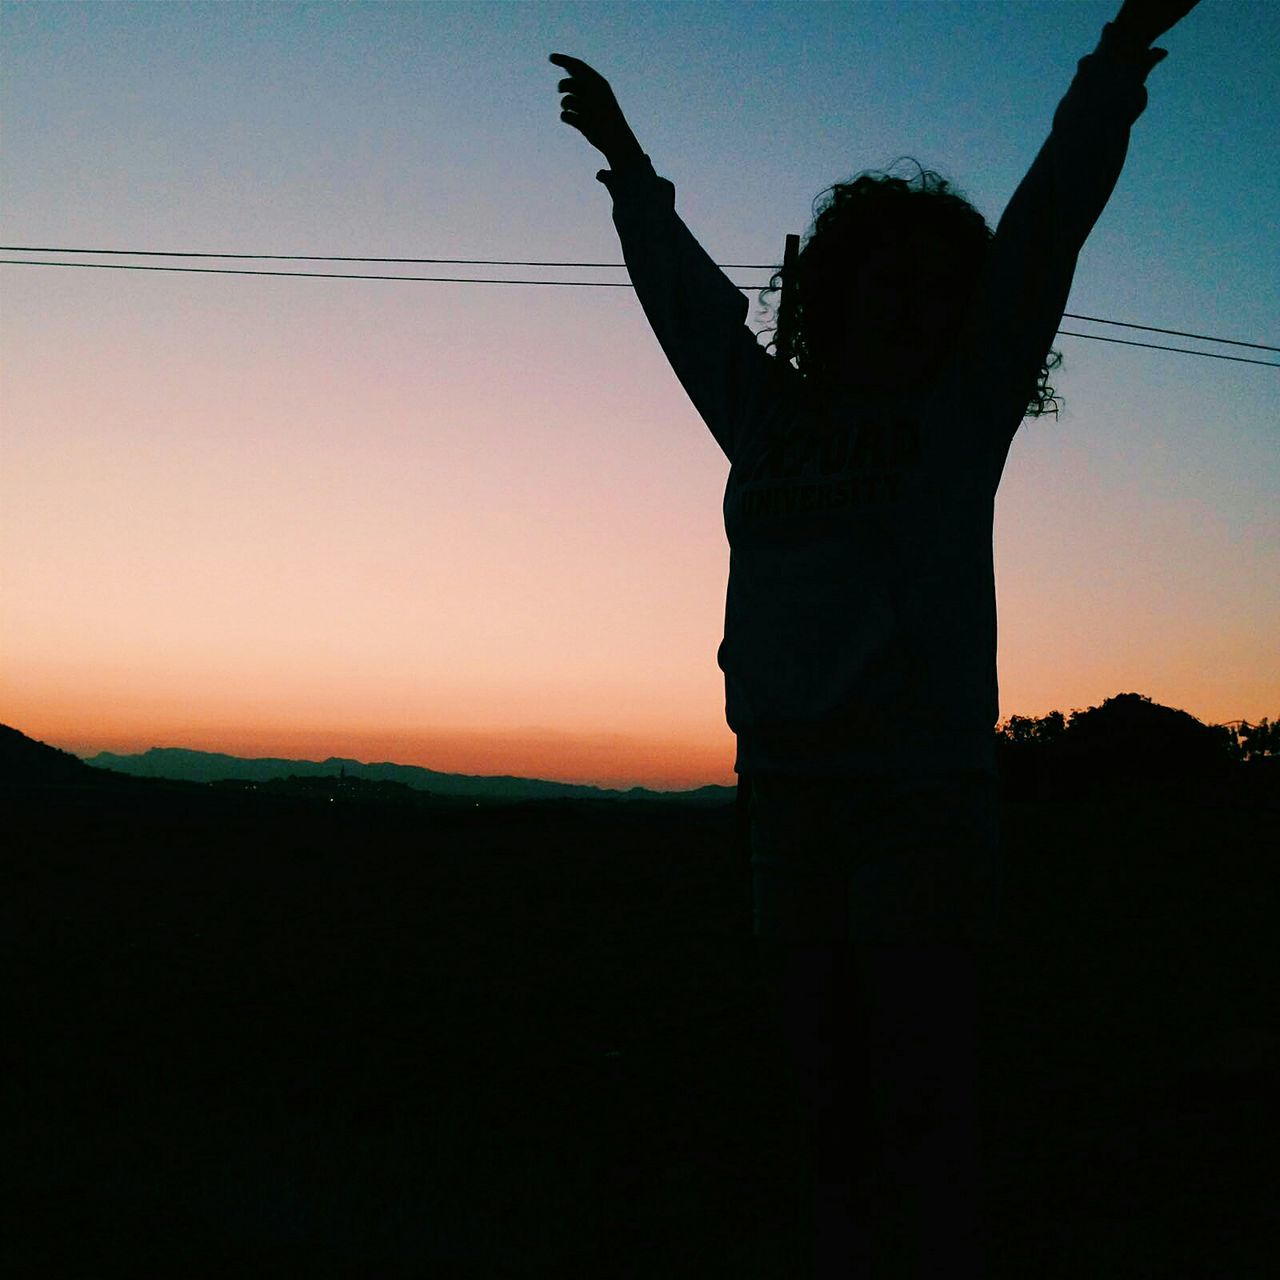 Indie Enjoying Life Sunset Silhouettes Exploring Contrast Dancing Grunge Freshness